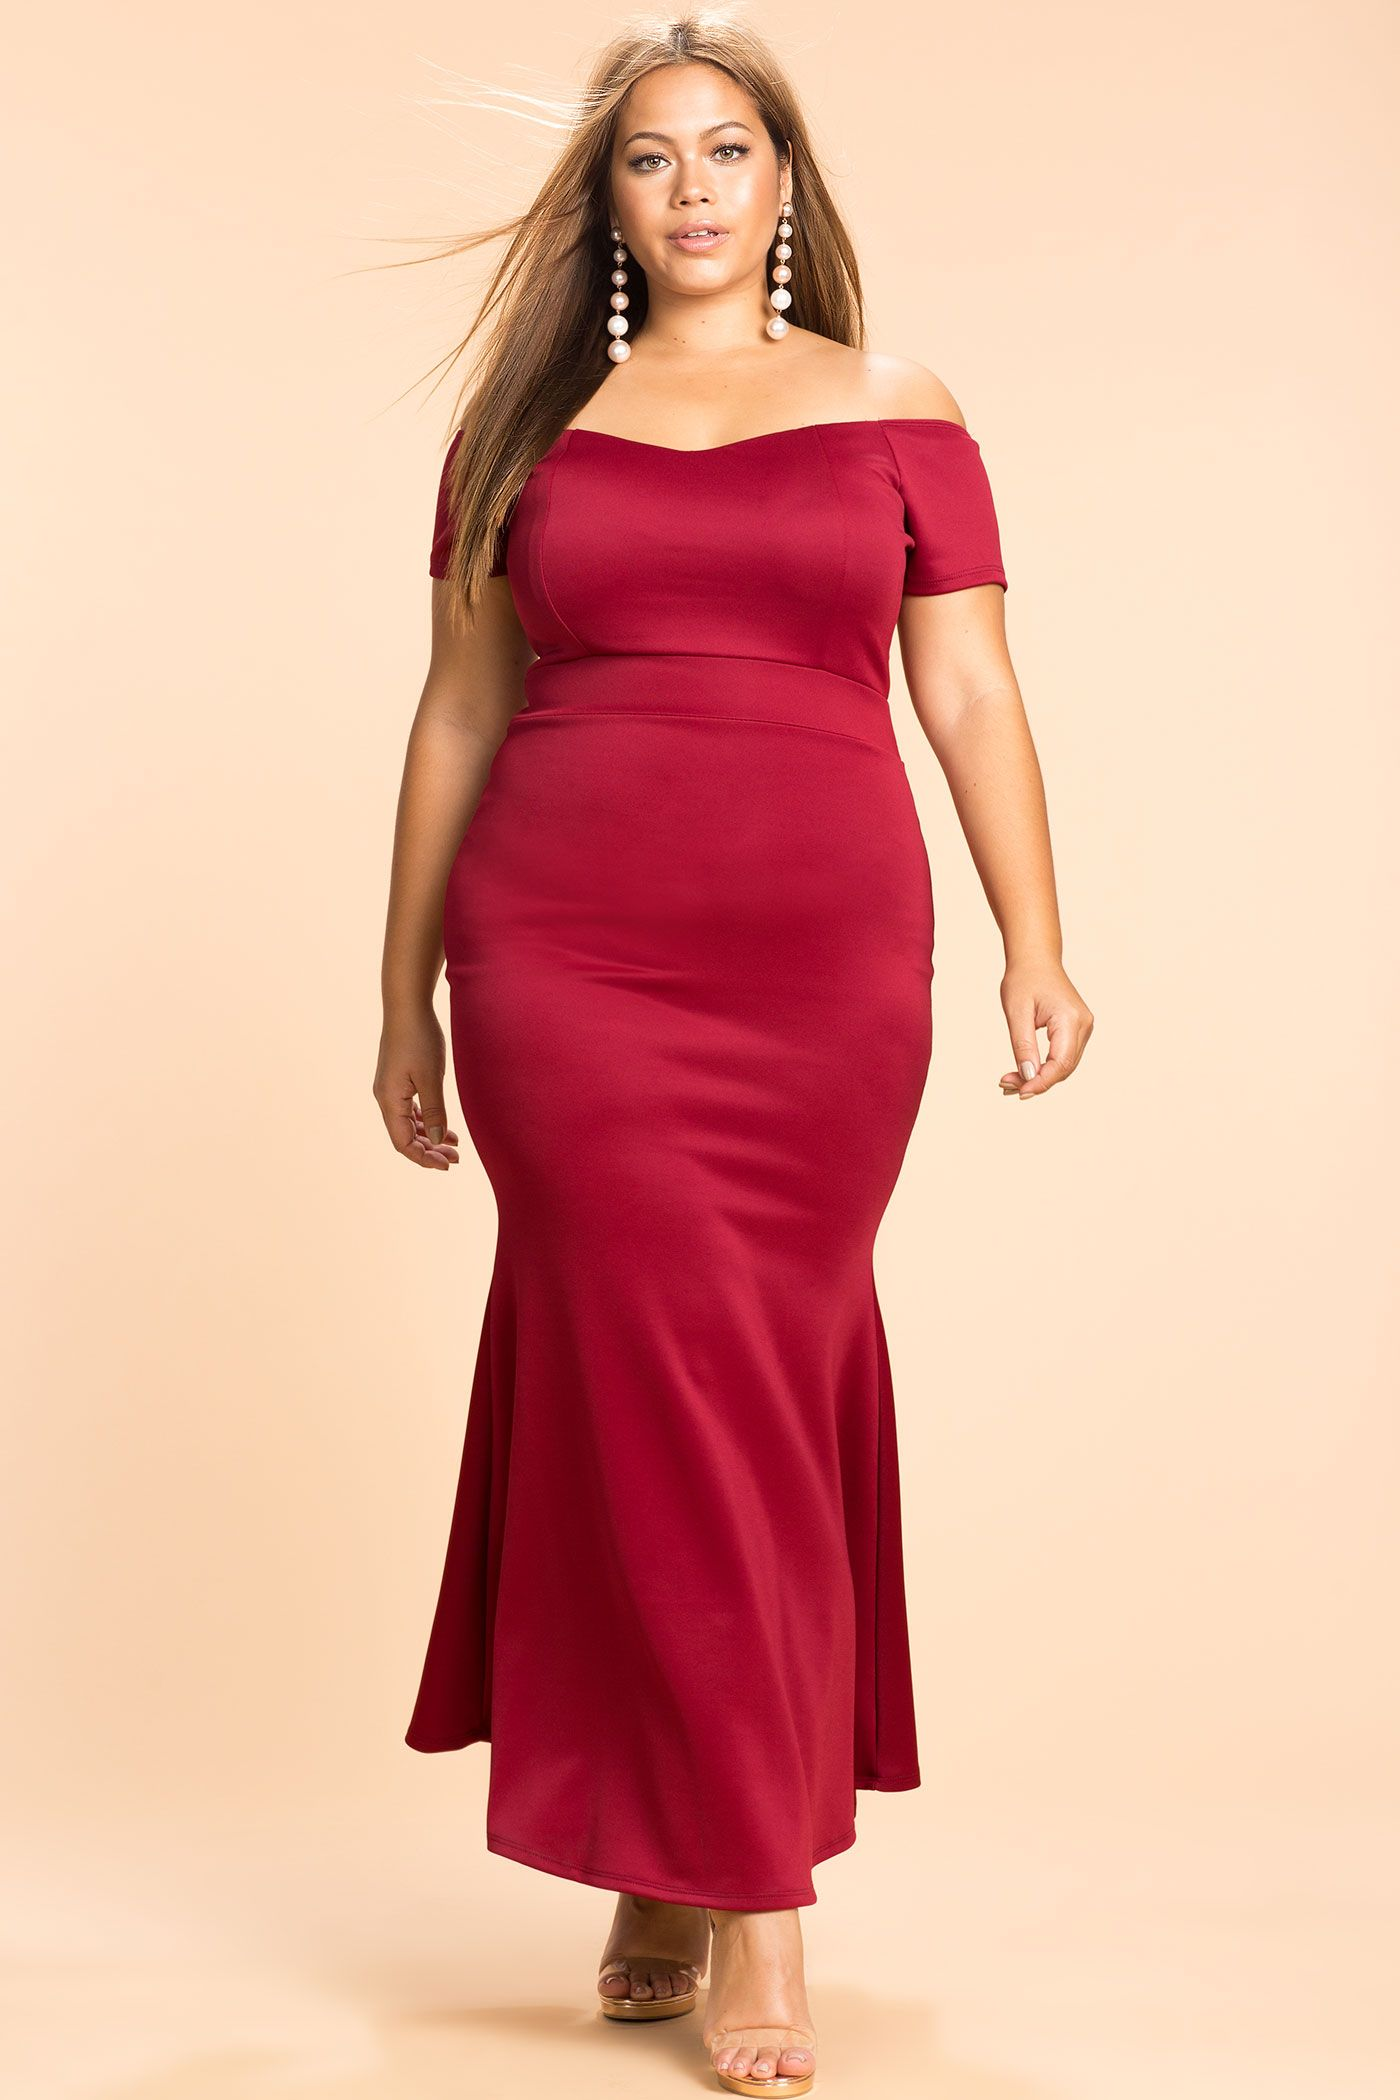 Plus-Size Formal Fall 2017 | Plus Size Mermaid Off Shoulder ...